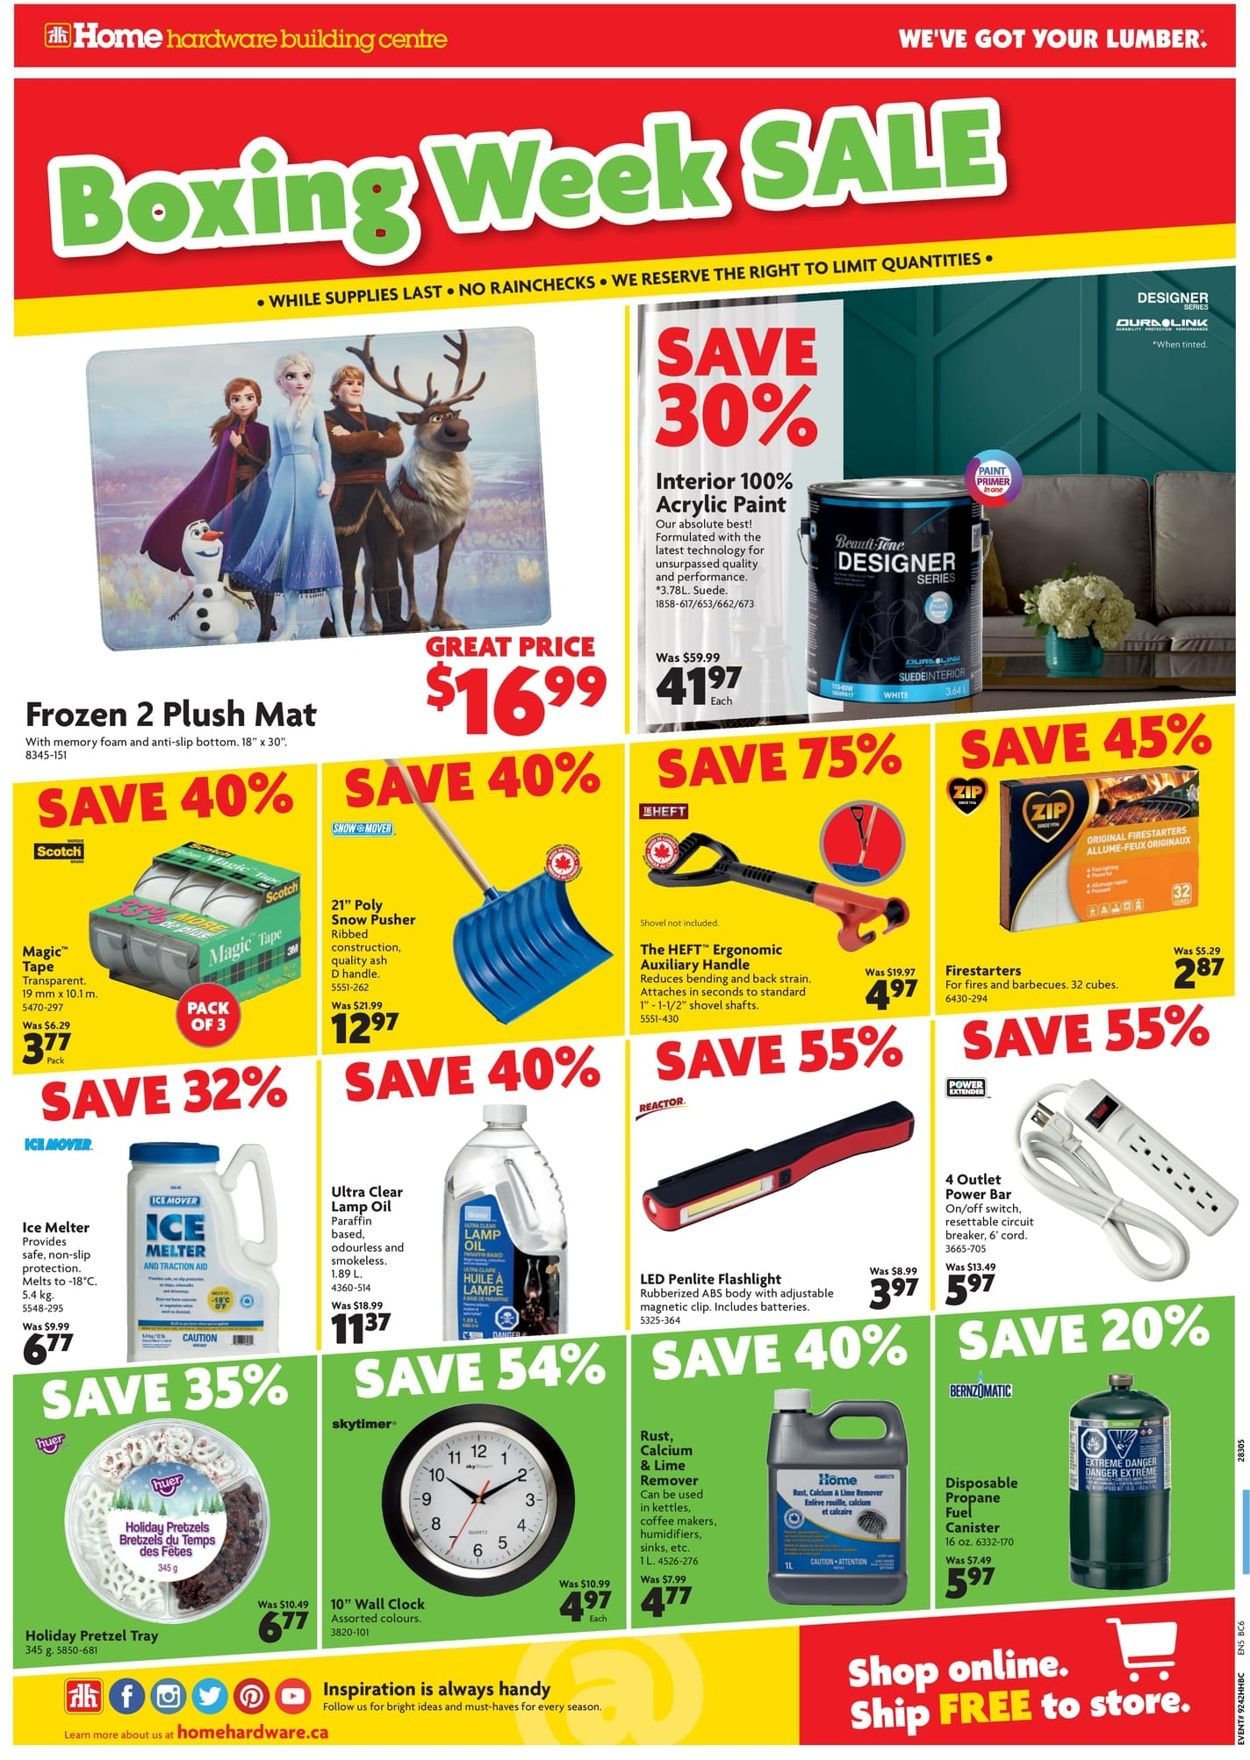 Home Hardware - Boxing Week 2019 Sale Flyer - 12/19-01/05/2020 (Page 2)